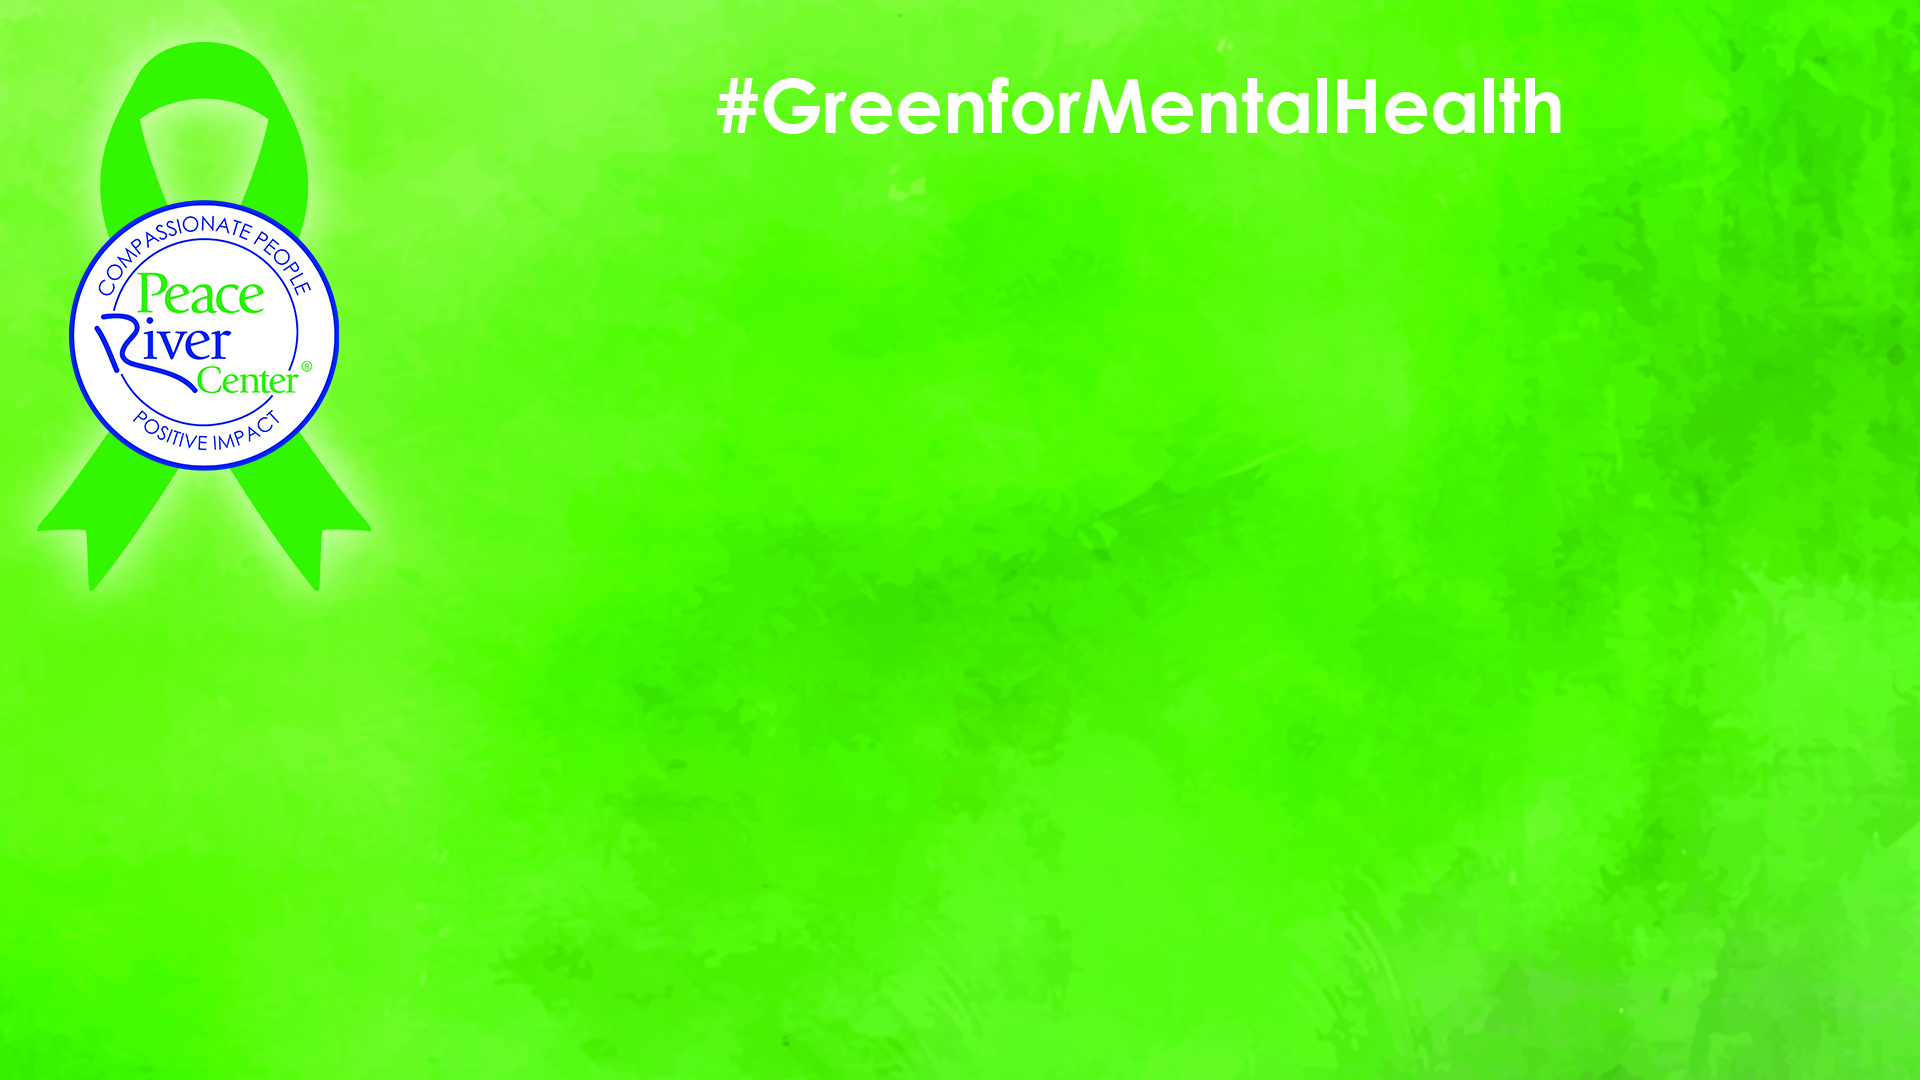 Zoom Background Image Ribbon with PRC logo and Green for Mental Health